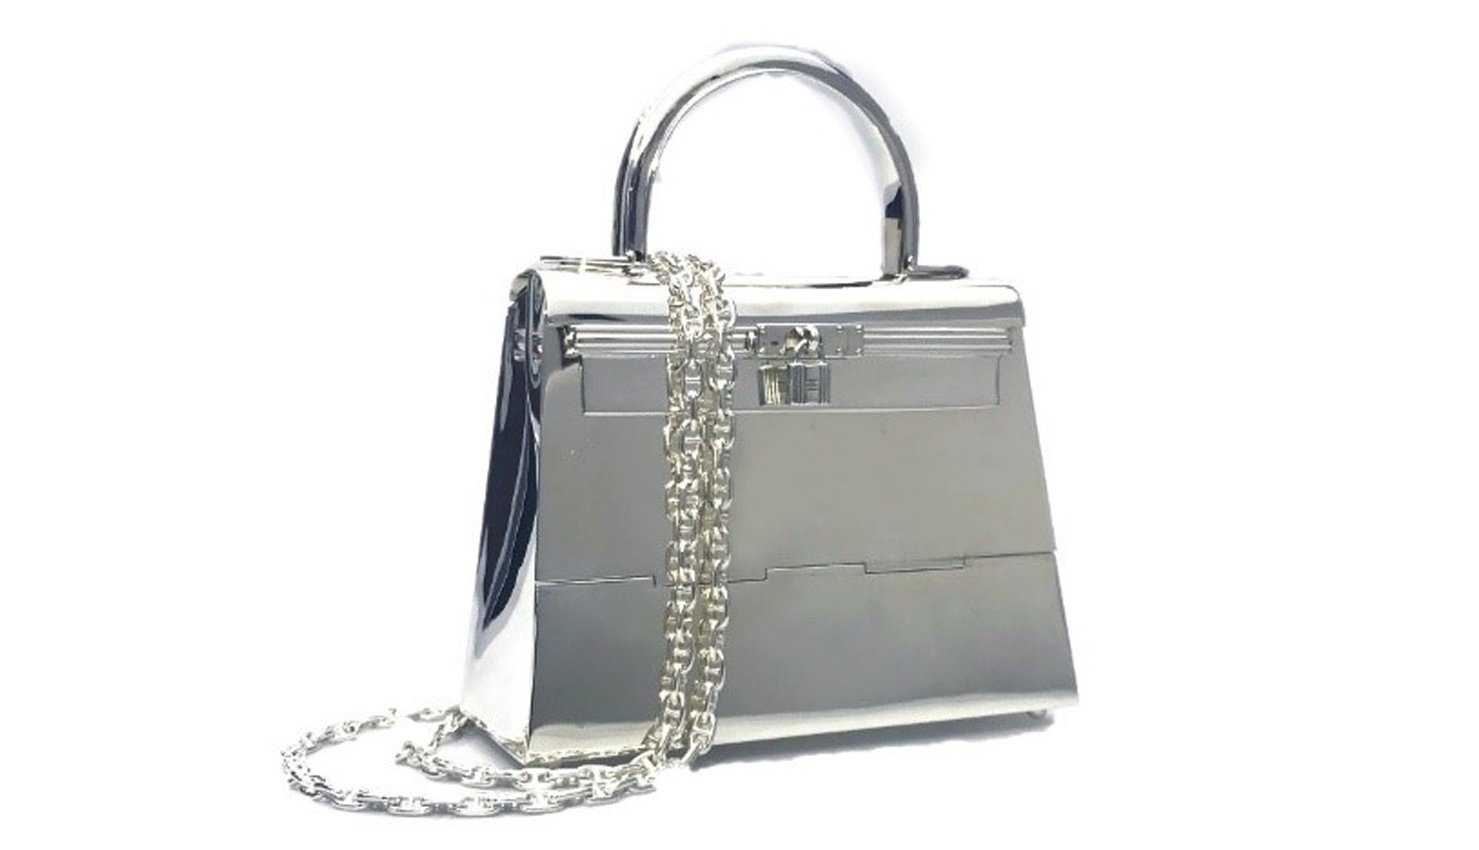 This Sterling silver Hermès Kelly sold at auction for over $63,000 -